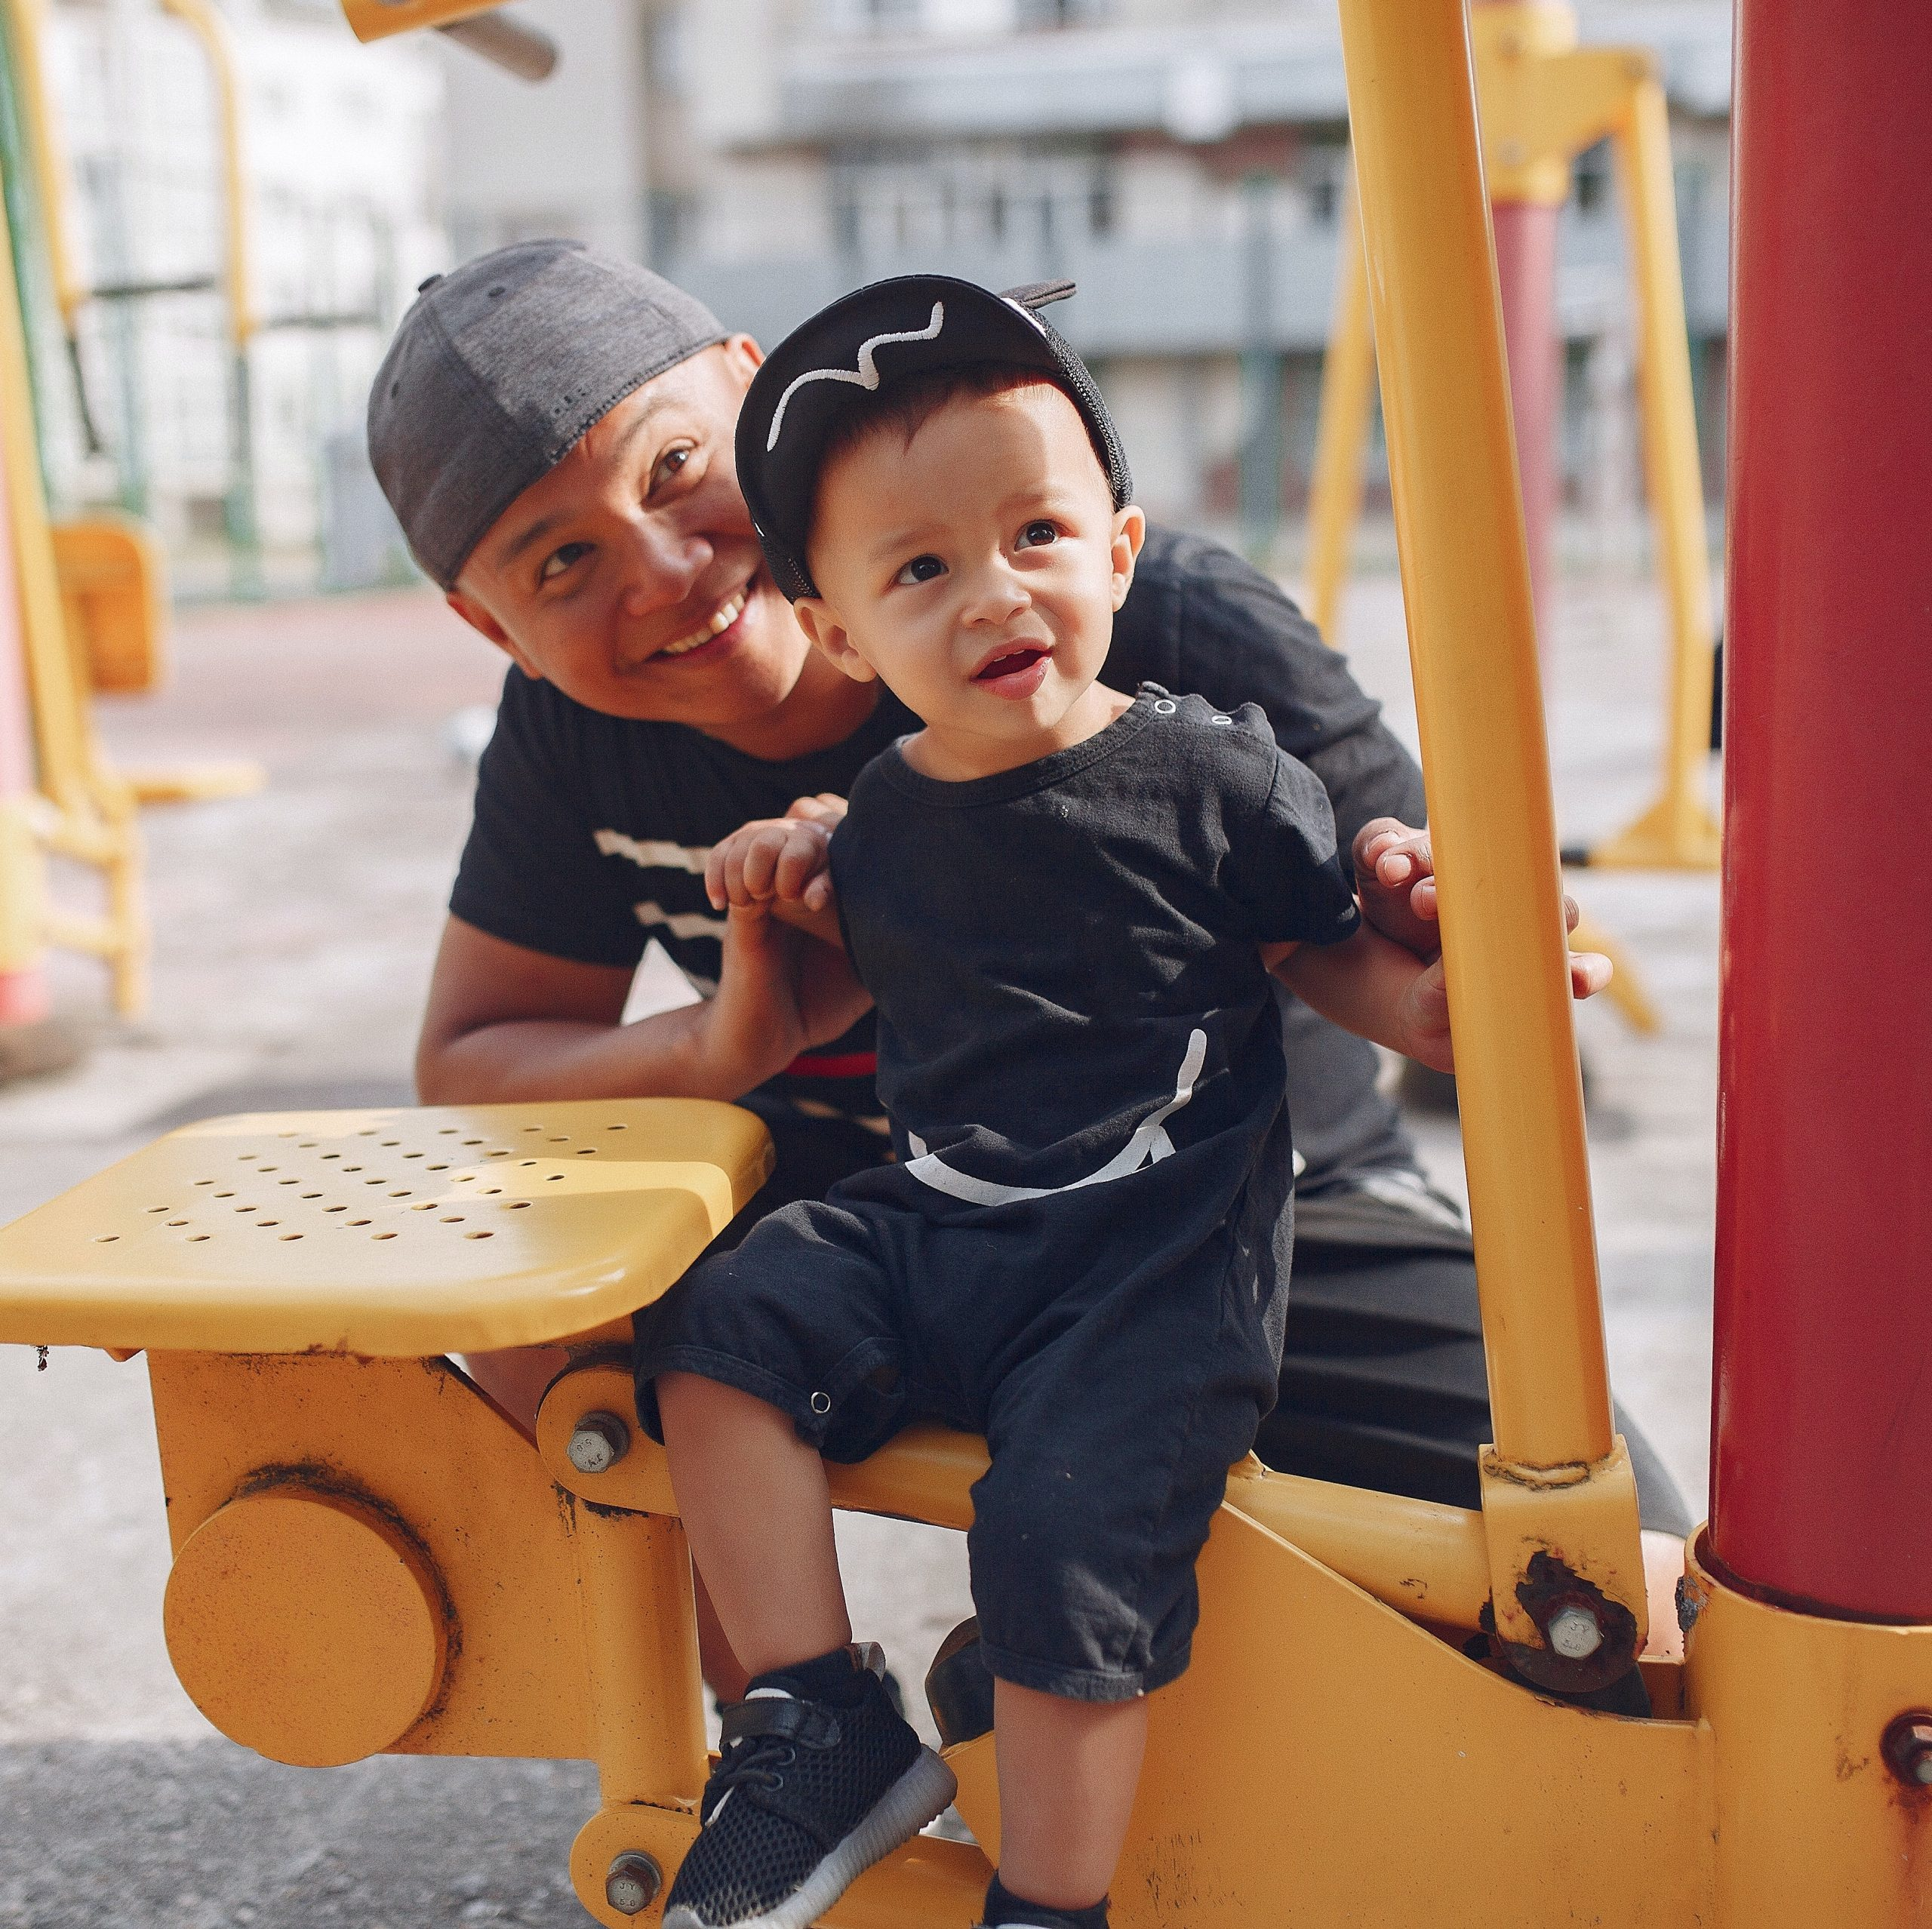 Father with son on playground